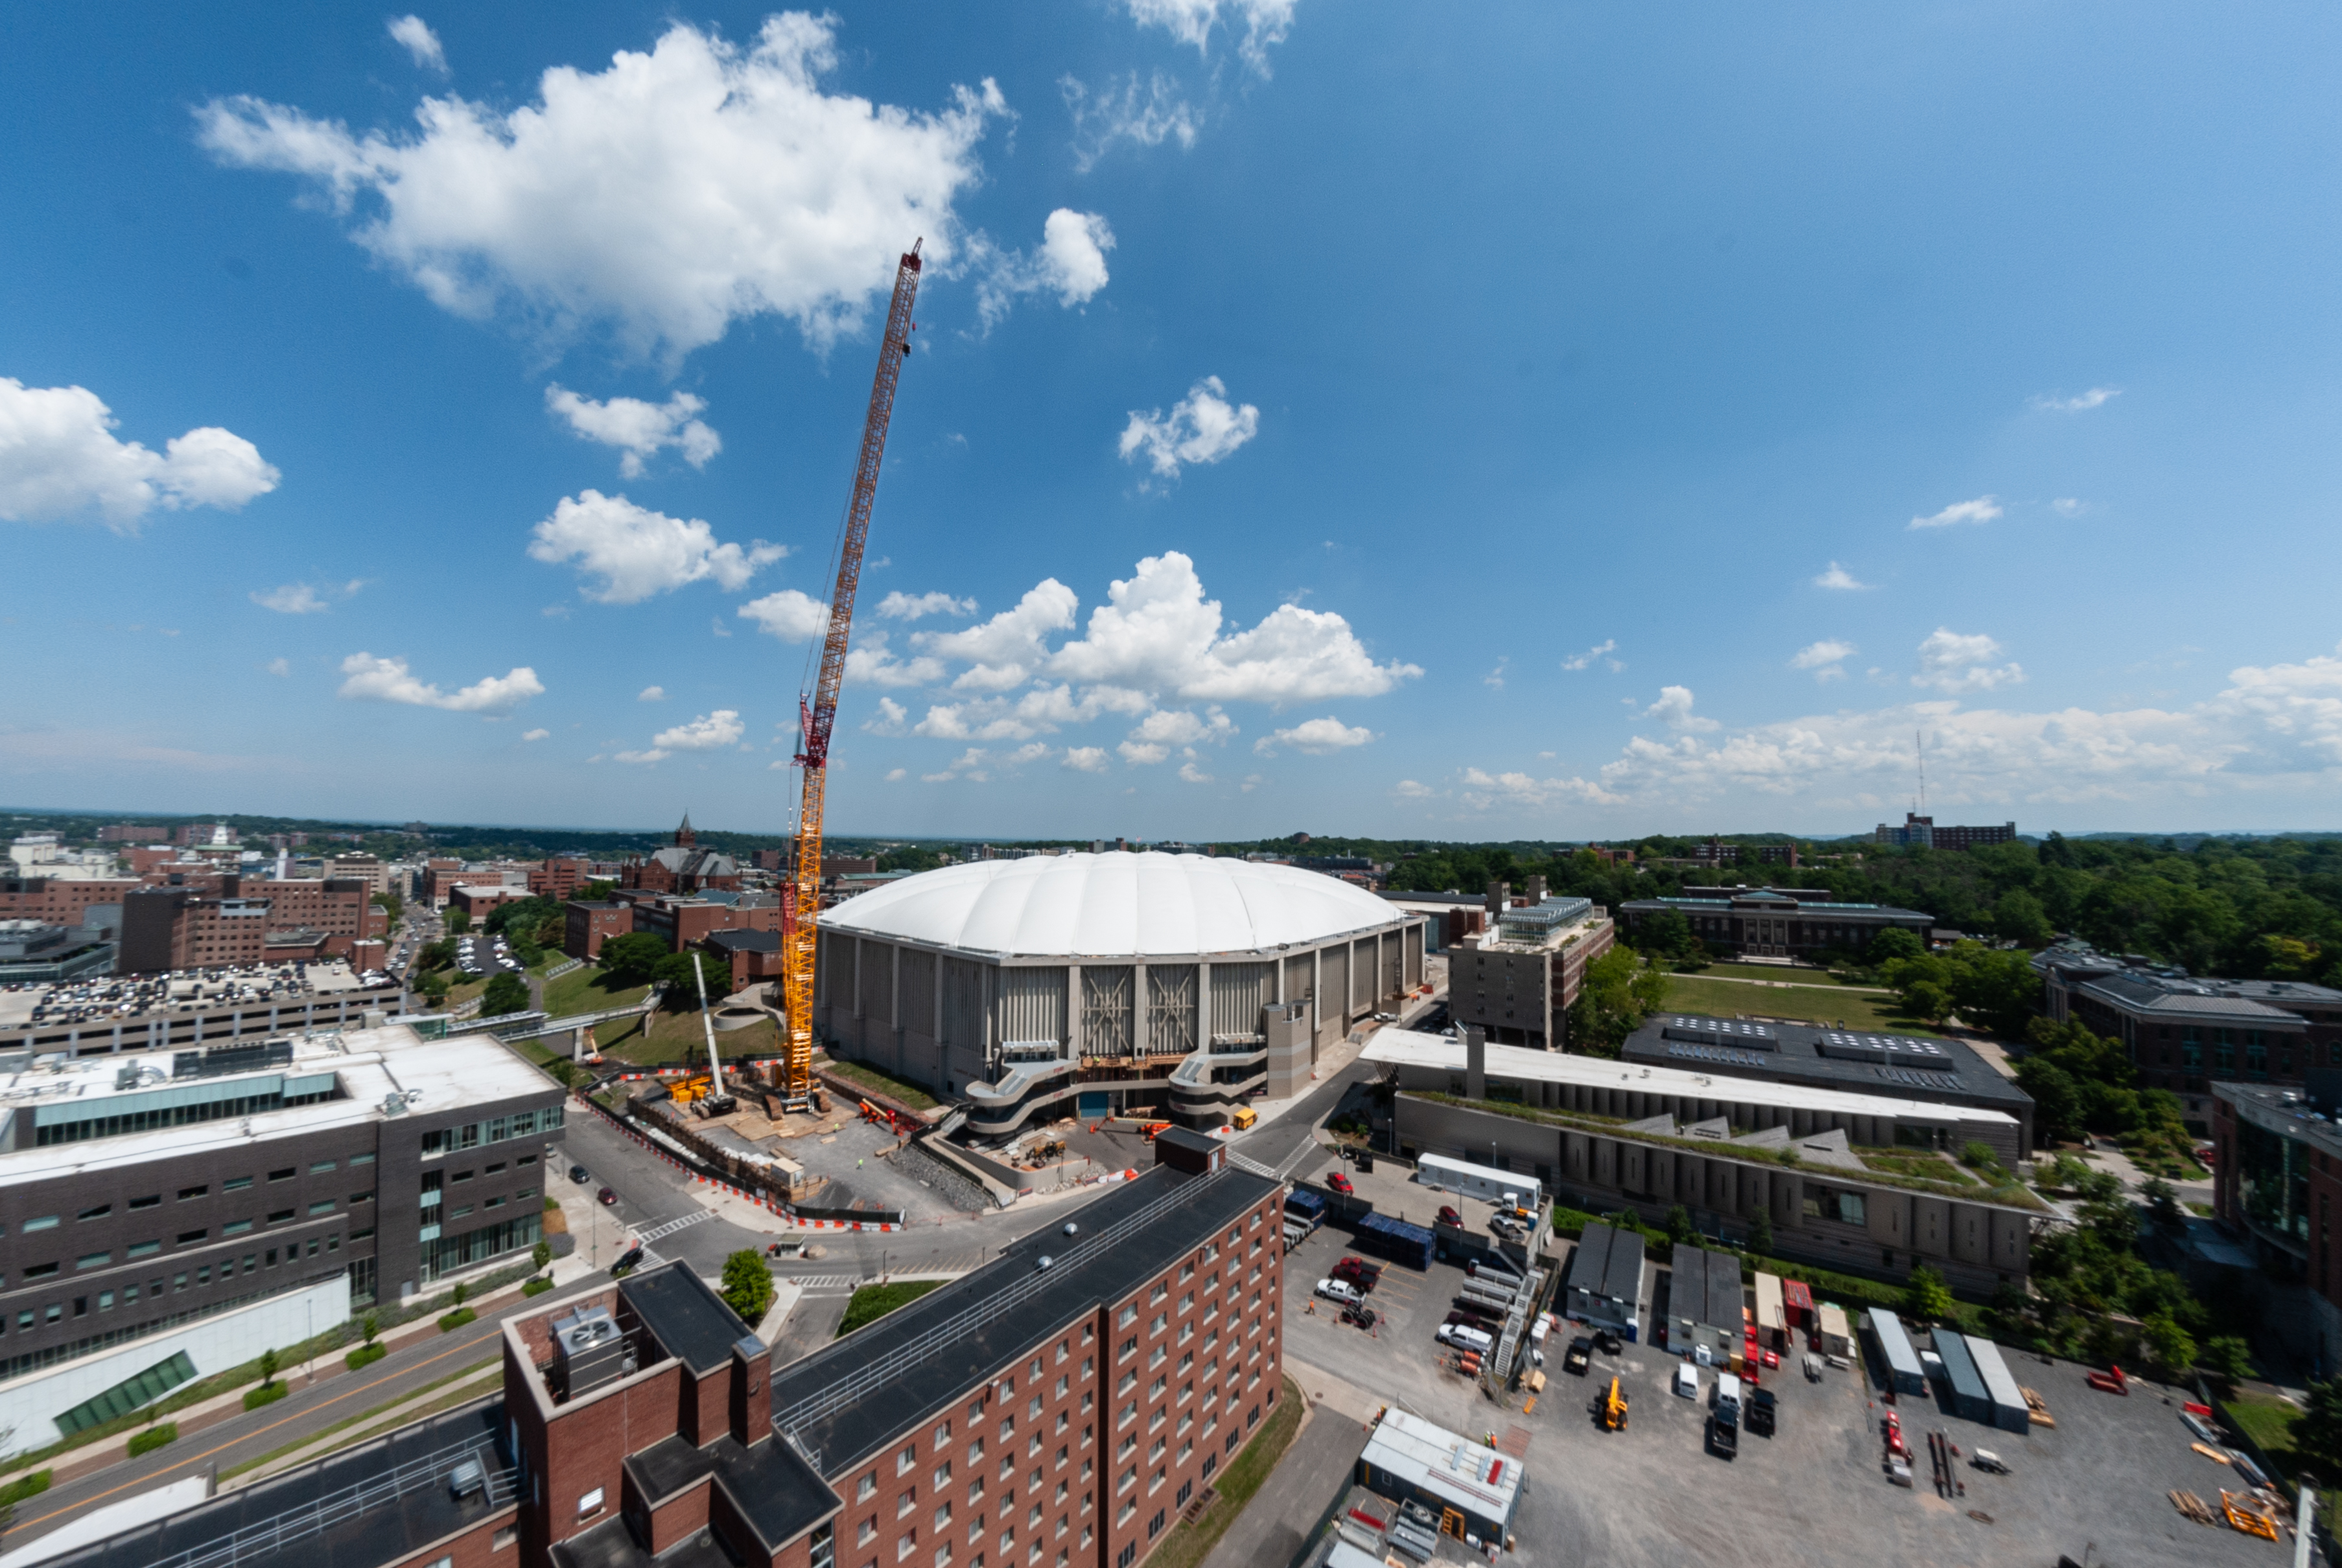 Carrier Dome crane, one of the biggest in the U.S., now towers above the Syracuse skyline